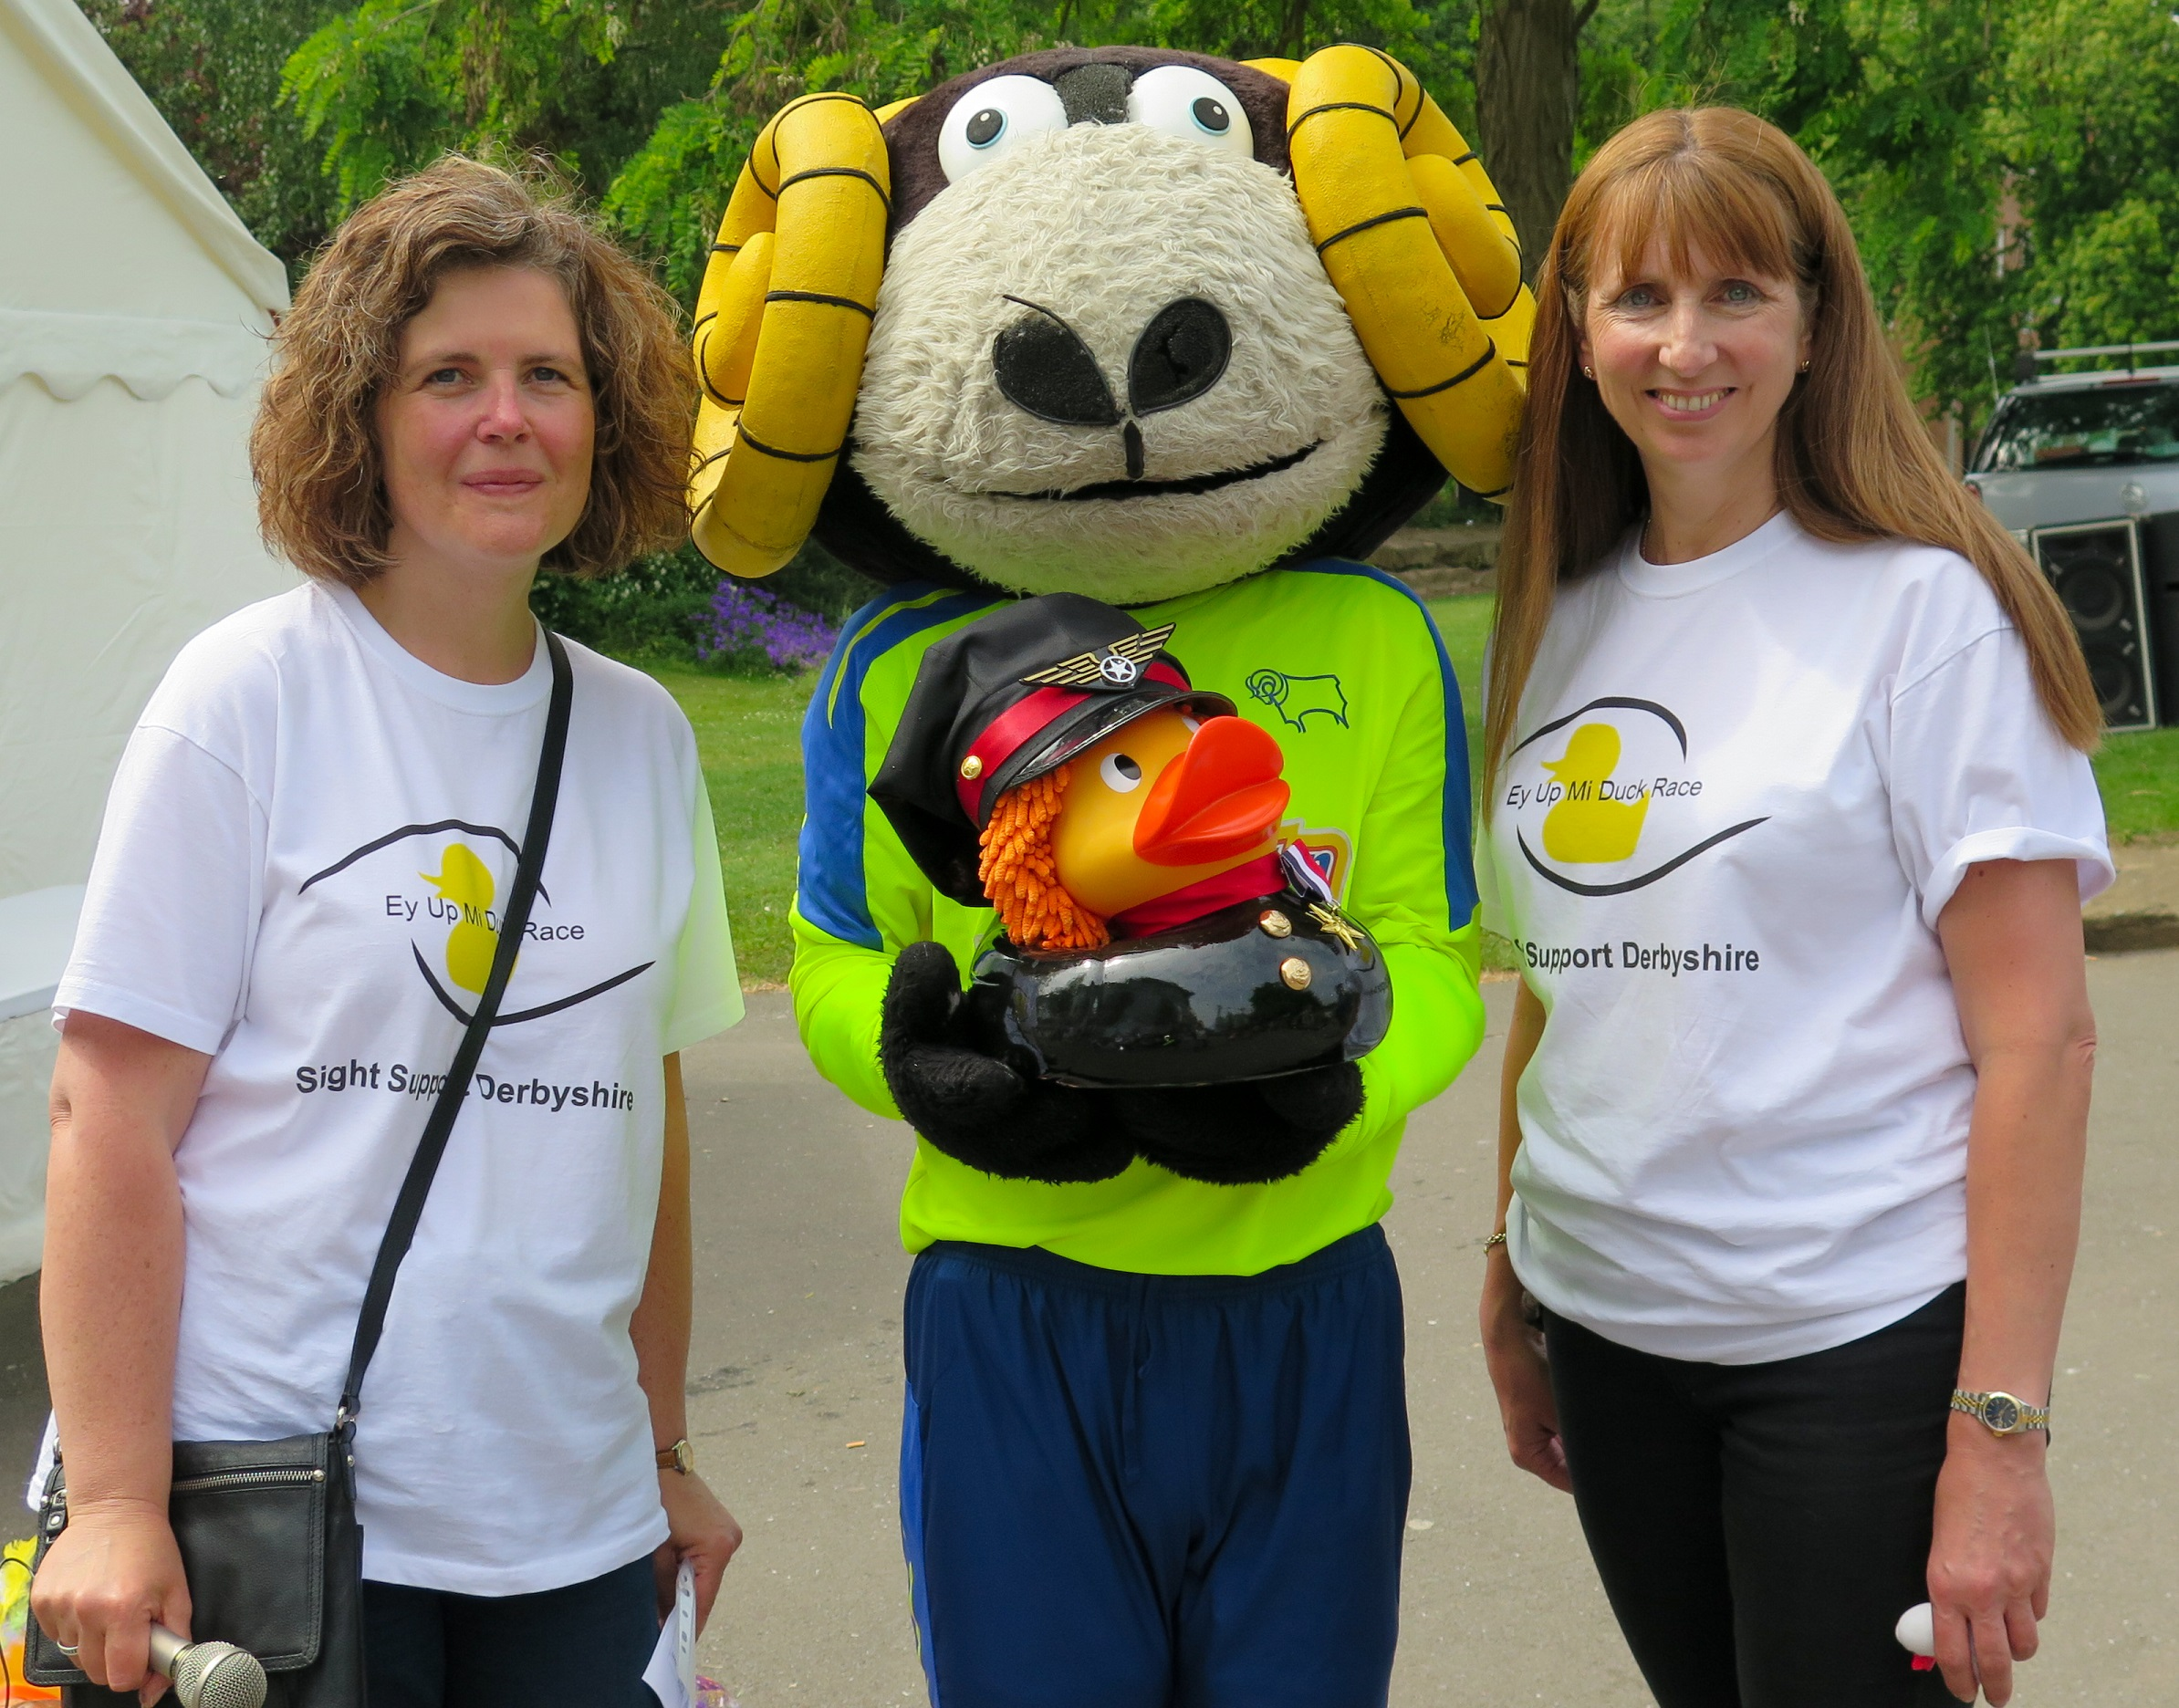 Image showing Claire, Rammie, Lynda and the fastest duck